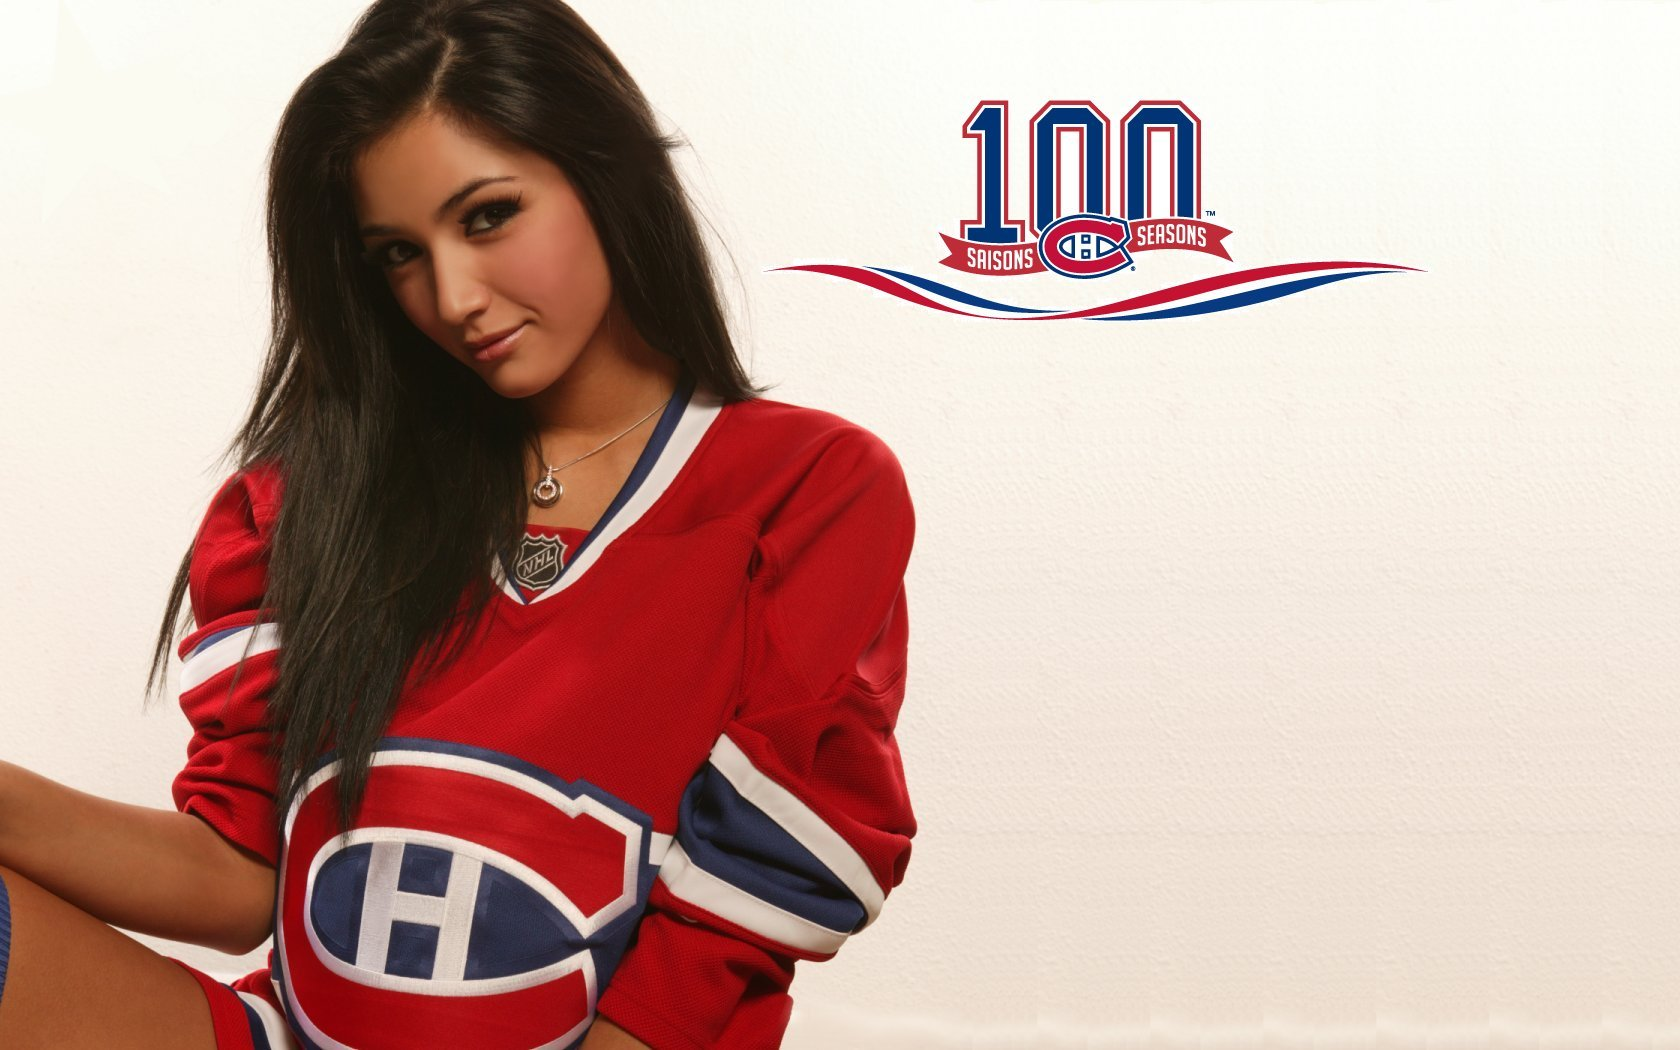 MONTREAL CANADIENS nhl hockey 56 wallpaper background 1680x1050